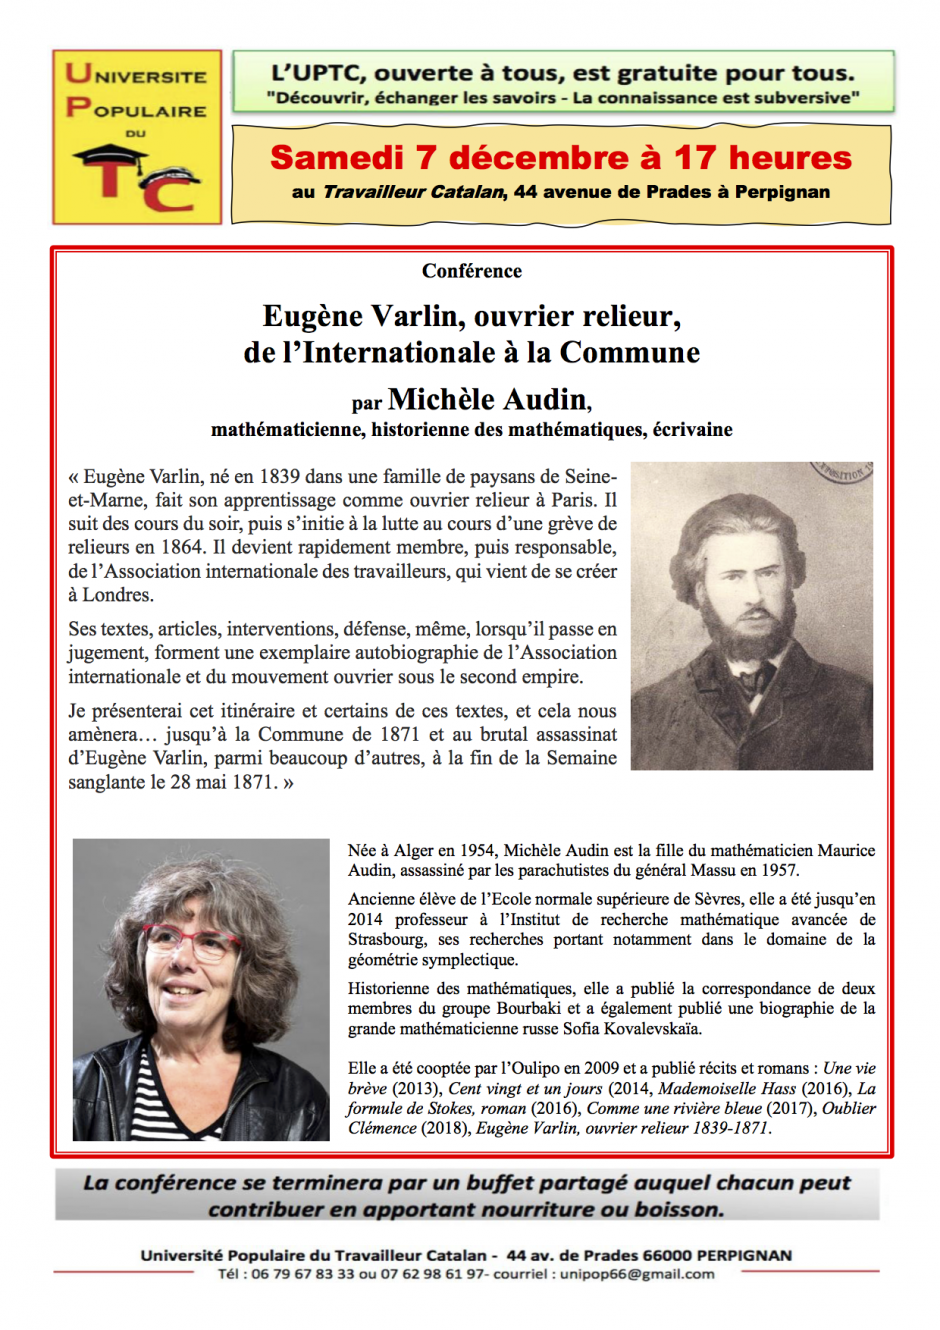 UPTC. Eugène Varlin, ouvrier relieur, de l'Internationale à la Commune